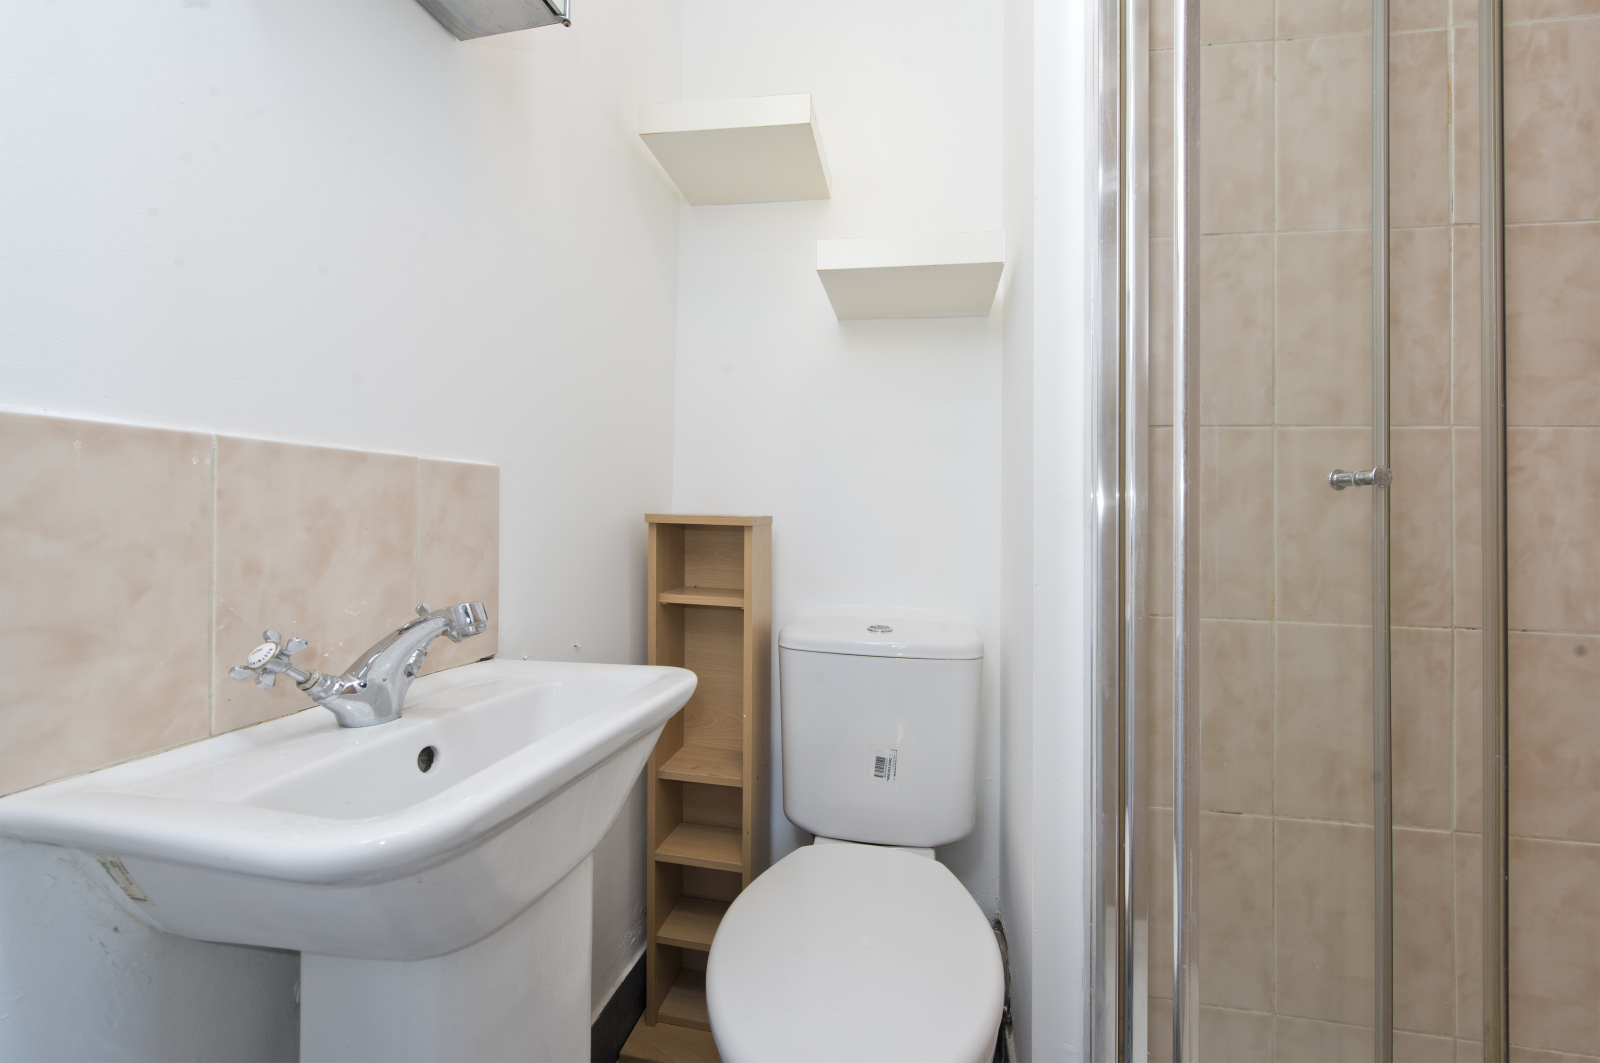 Studio flat to rent in Dalling road, Hammersmith, London  - Property Image 4